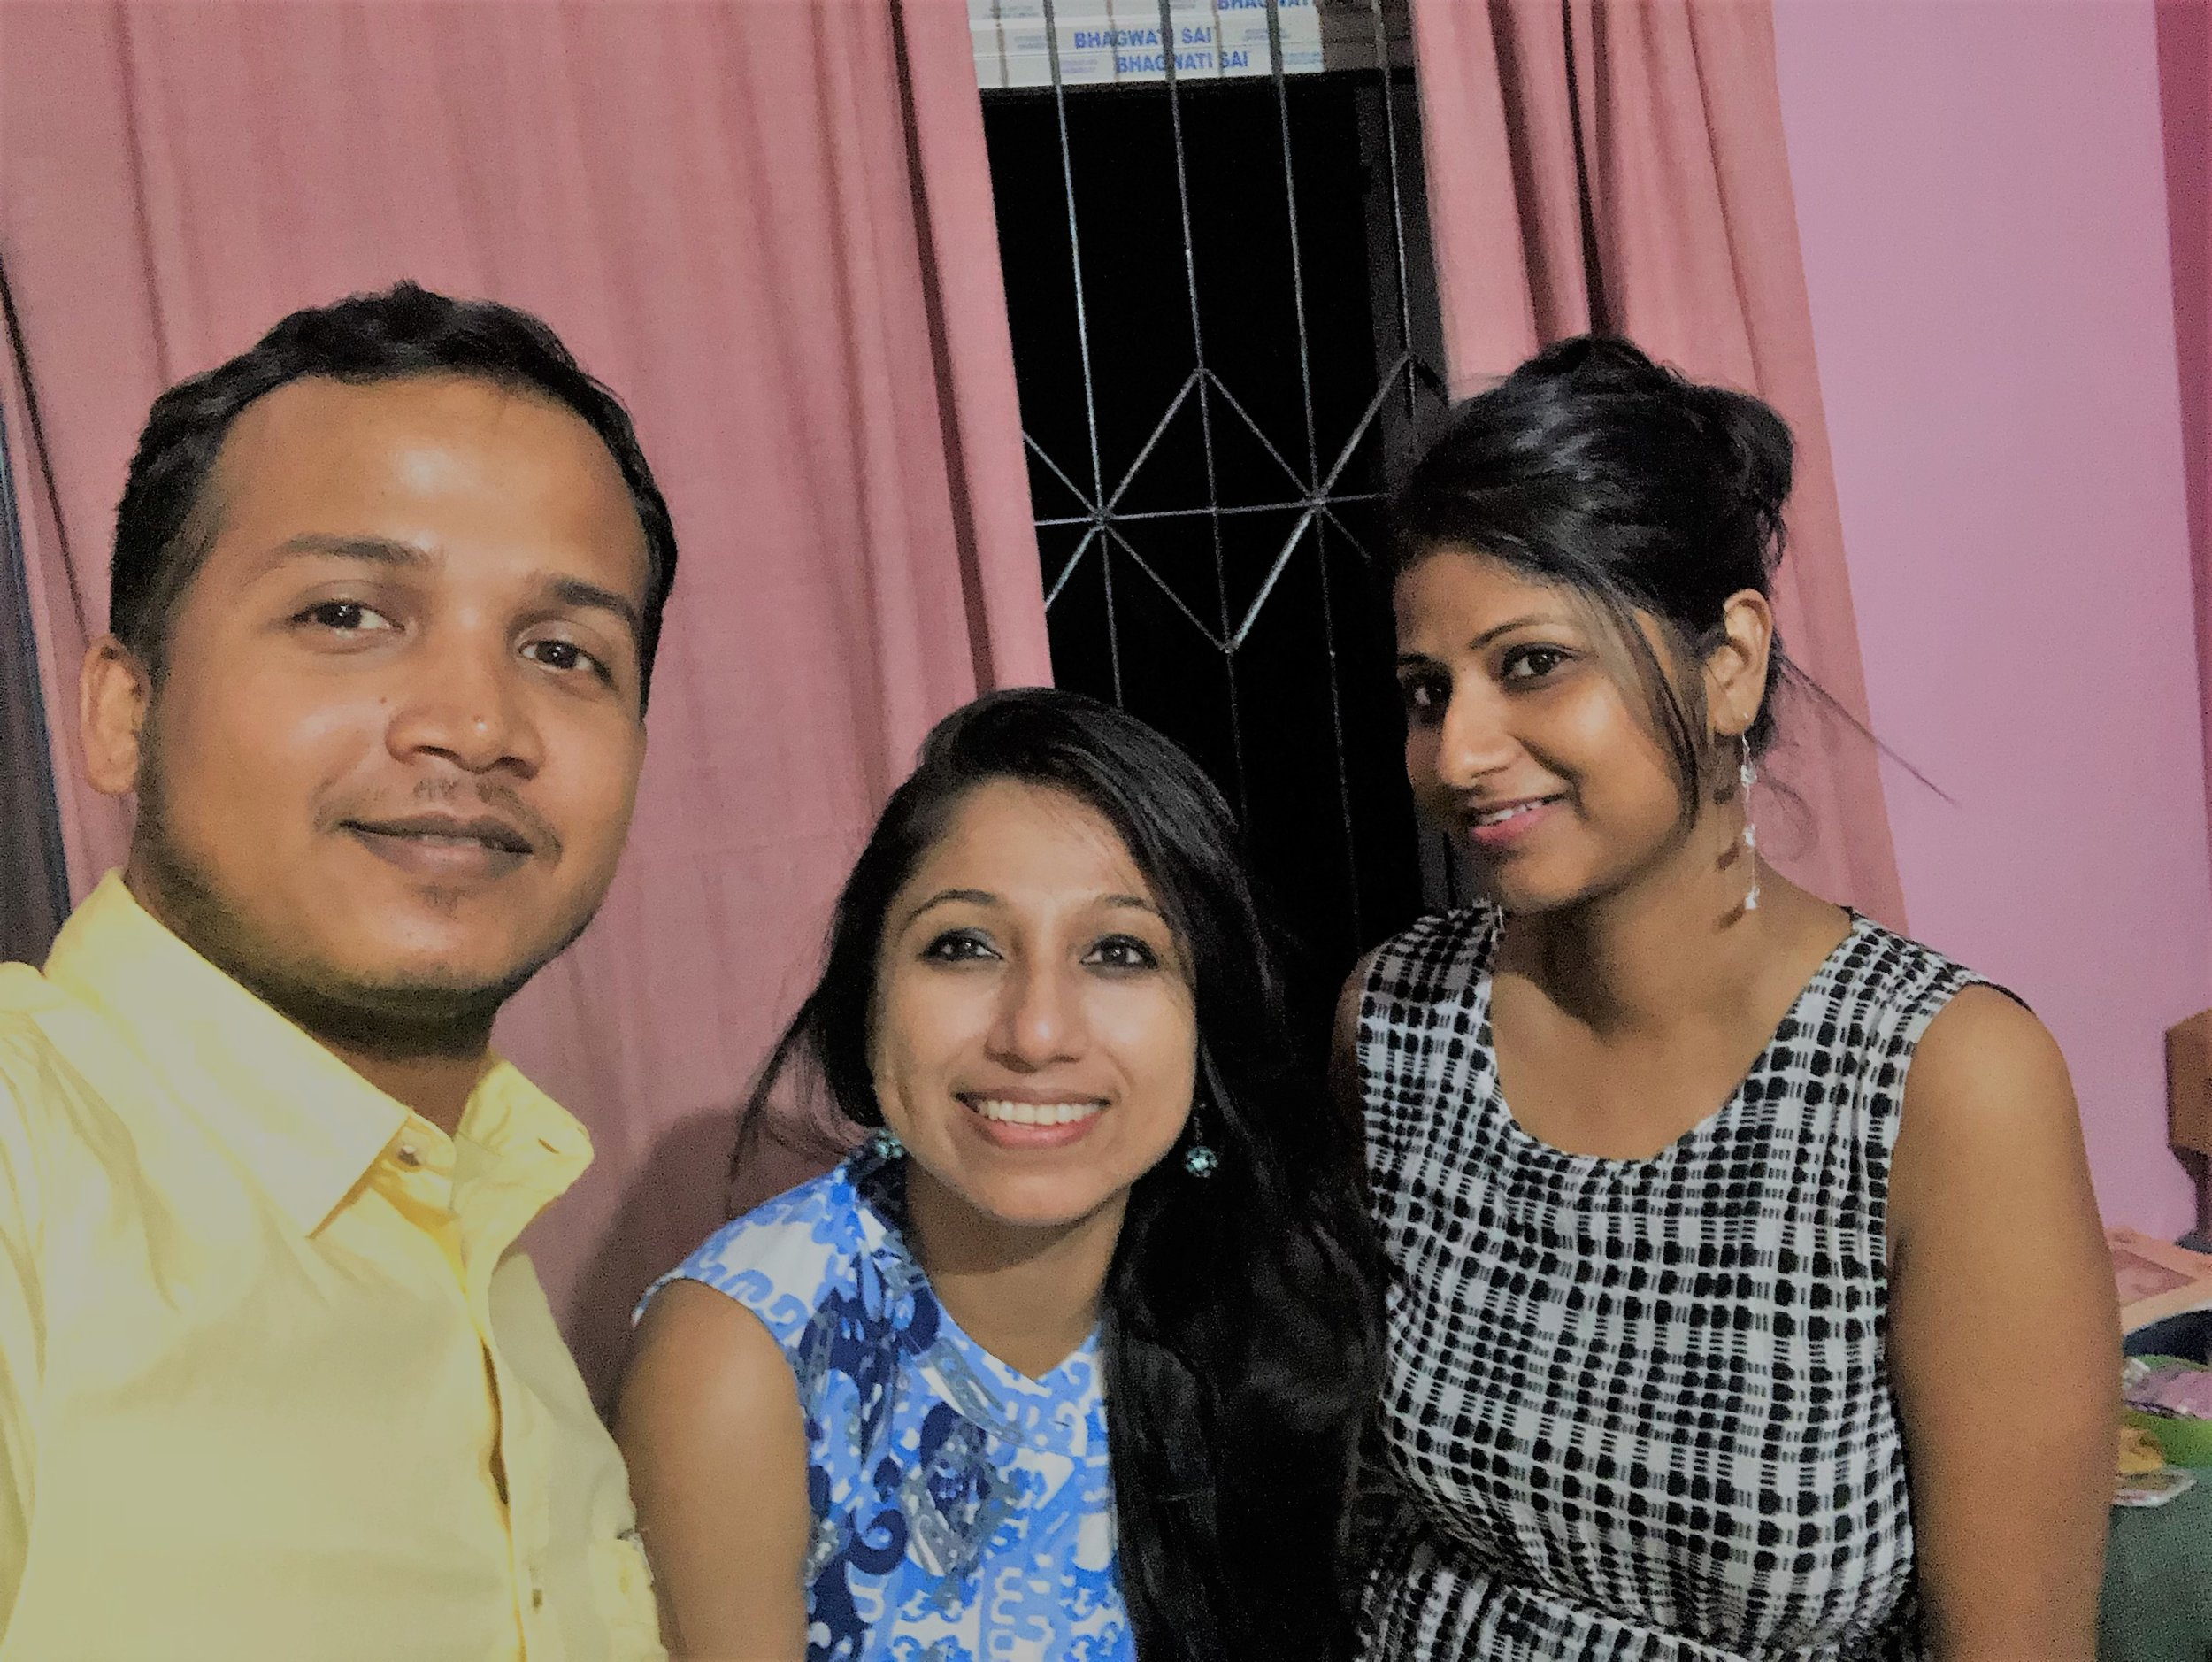 I am so thankful to Dr. Ishita Deb, Mr. Shantanu Paul, for my accommodation in their home in Guwahati and for all their love and affection!